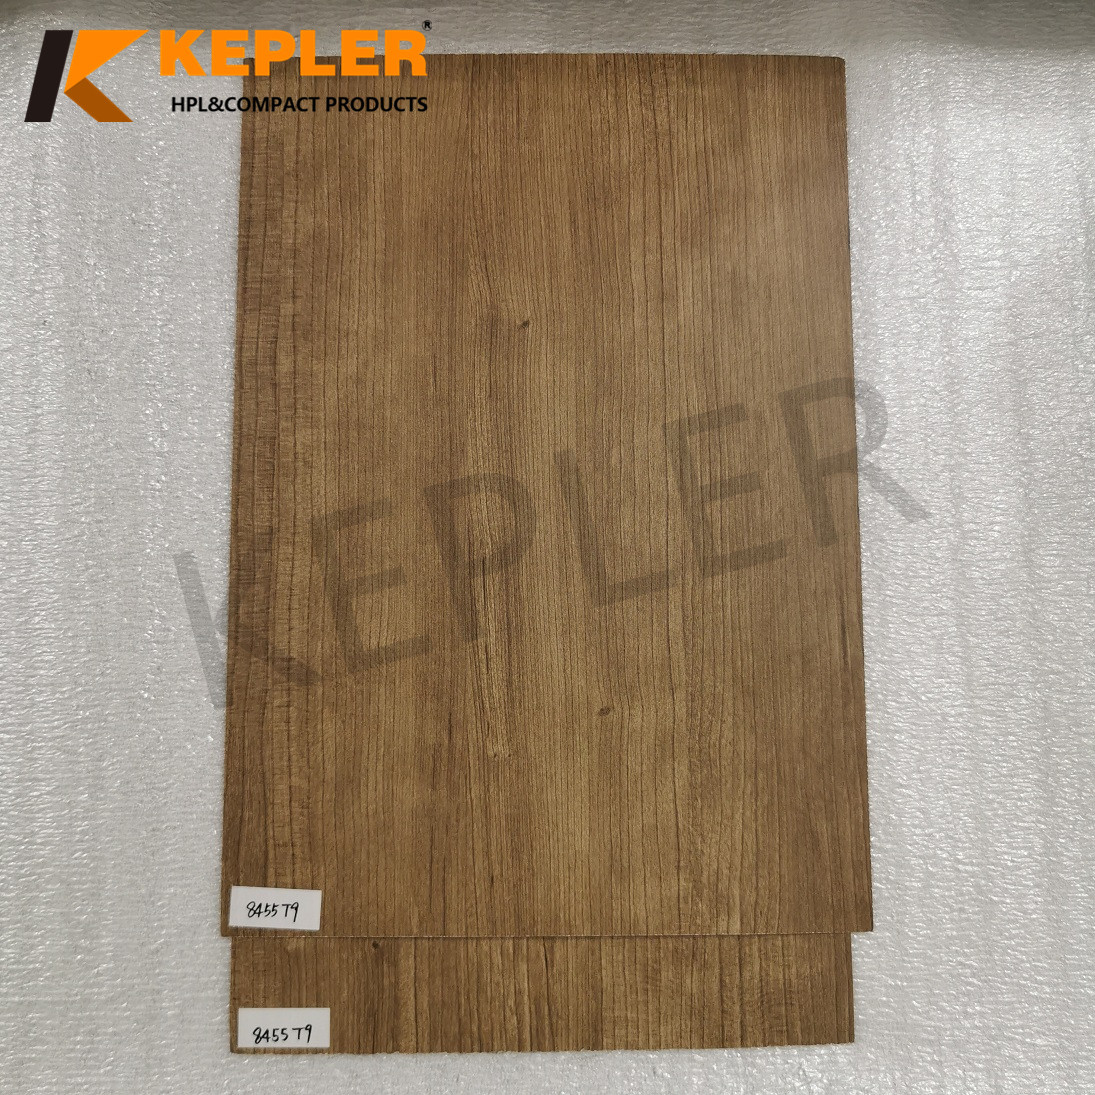 Kepler 0.8mm Wood Grain HPL Sheet Compact Laminate Board 8455